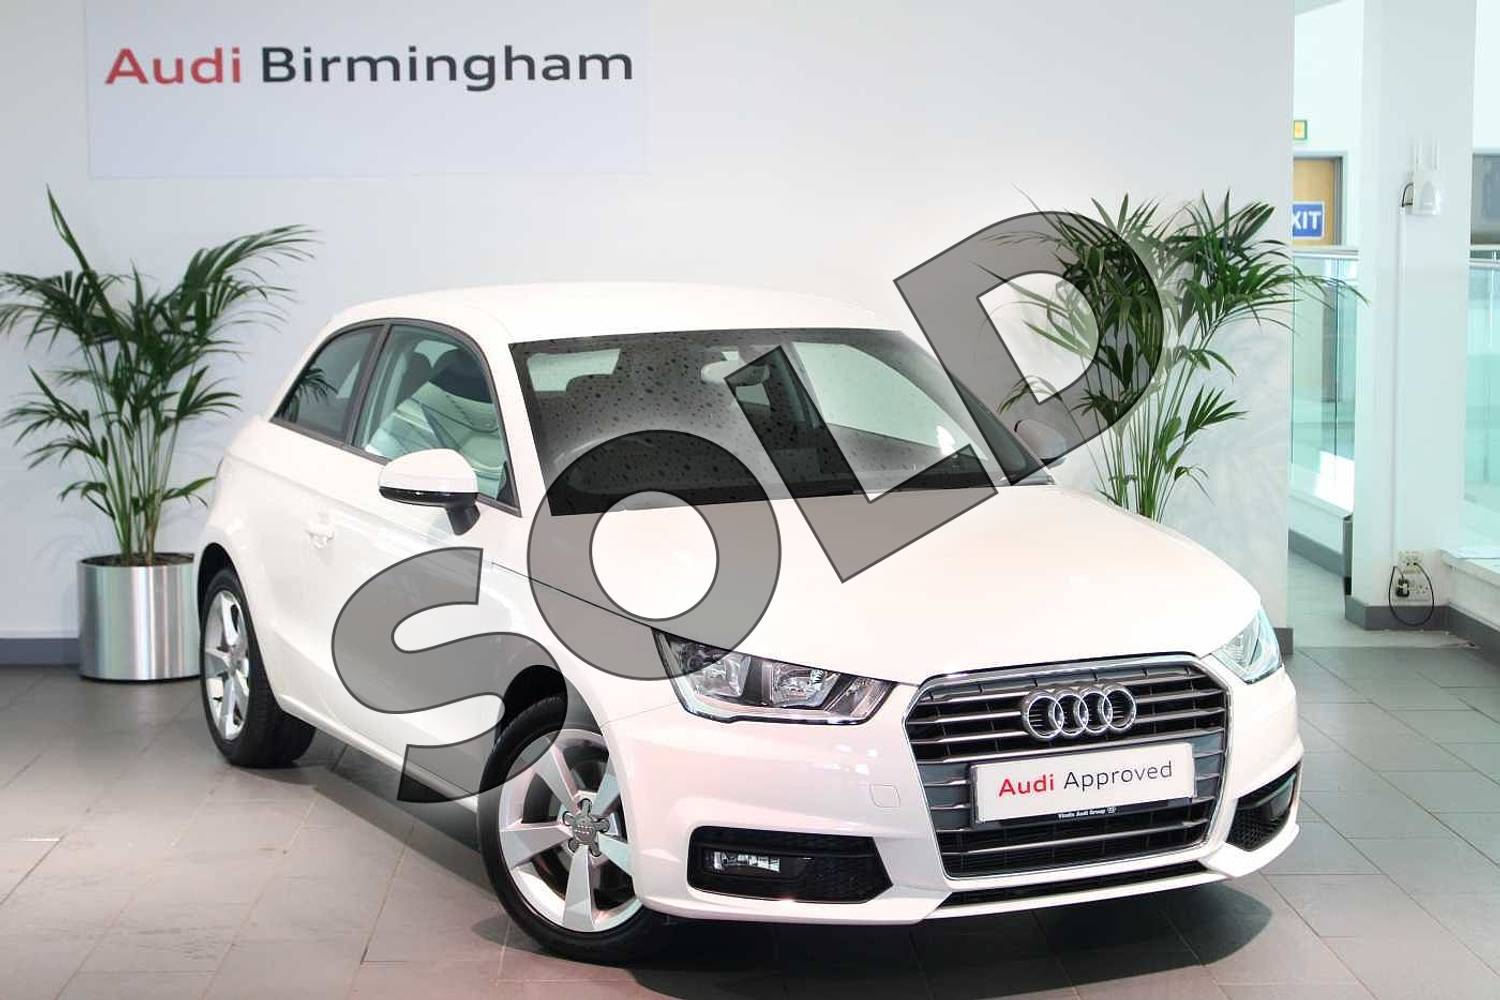 2017 Audi A1 Hatchback 1.4 TFSI Sport 3dr in Shell White at Birmingham Audi